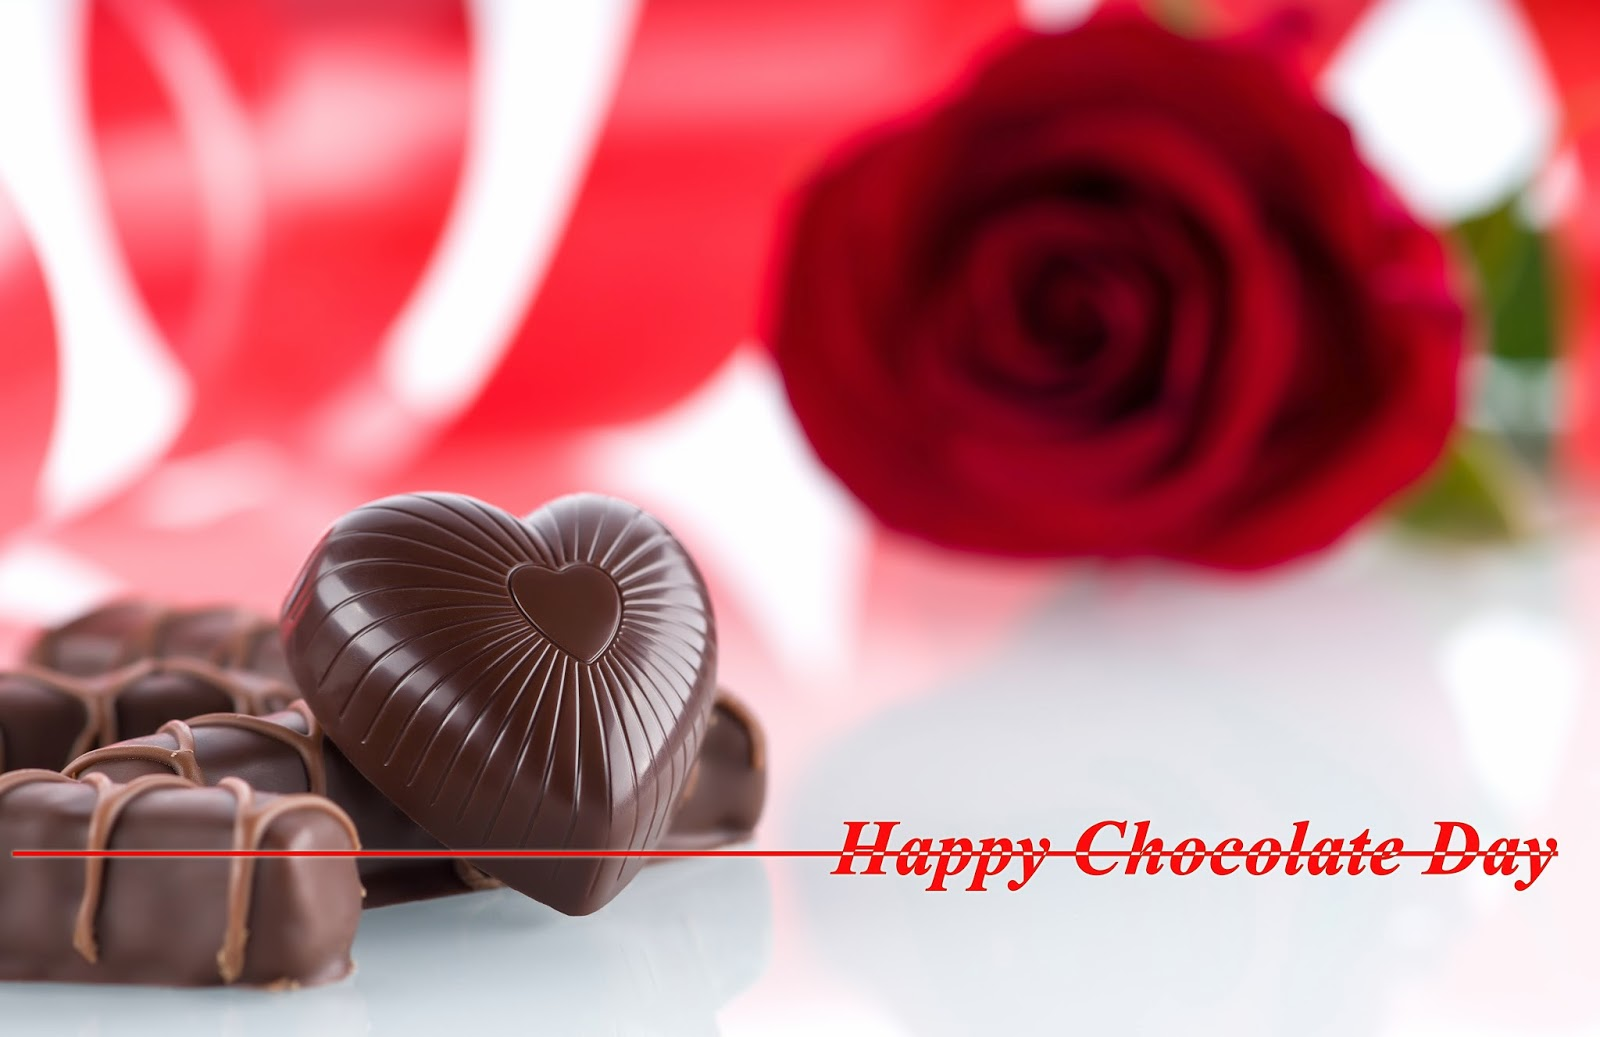 Chocolate Day 2018 Love Image For Girlfriend & Boyfriend